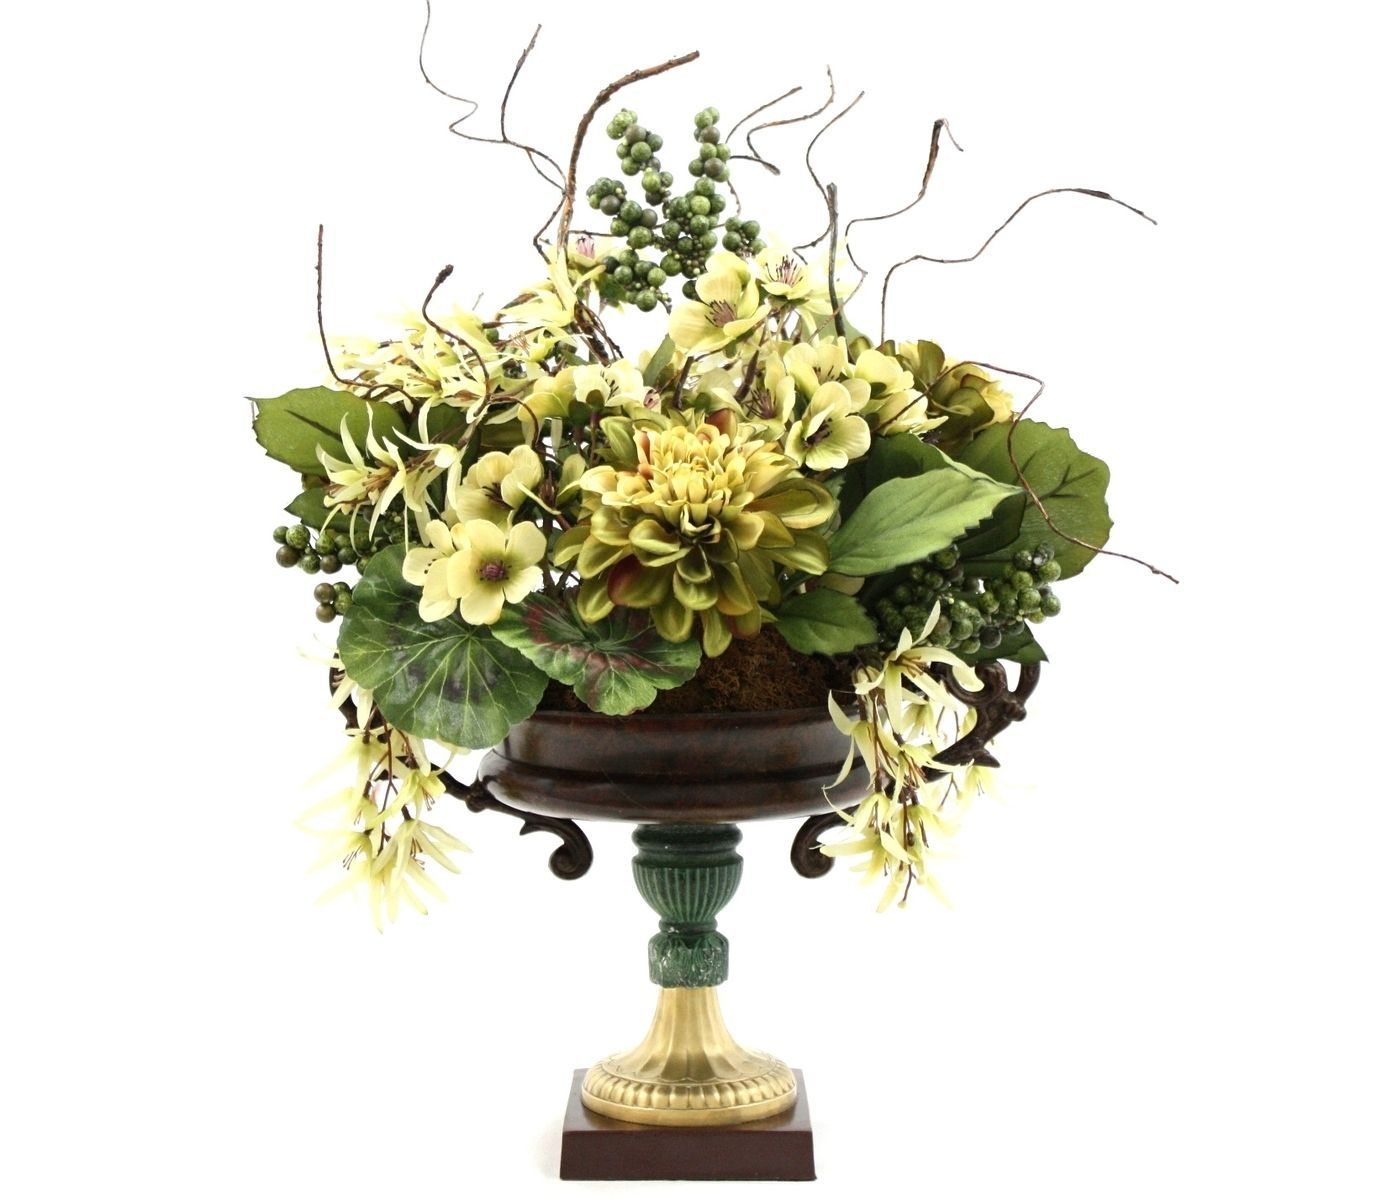 Custom Made Dining Table Centerpiece Silk Flower Arrangement, Home  Decorating Ideas, Vintage Luxury Table